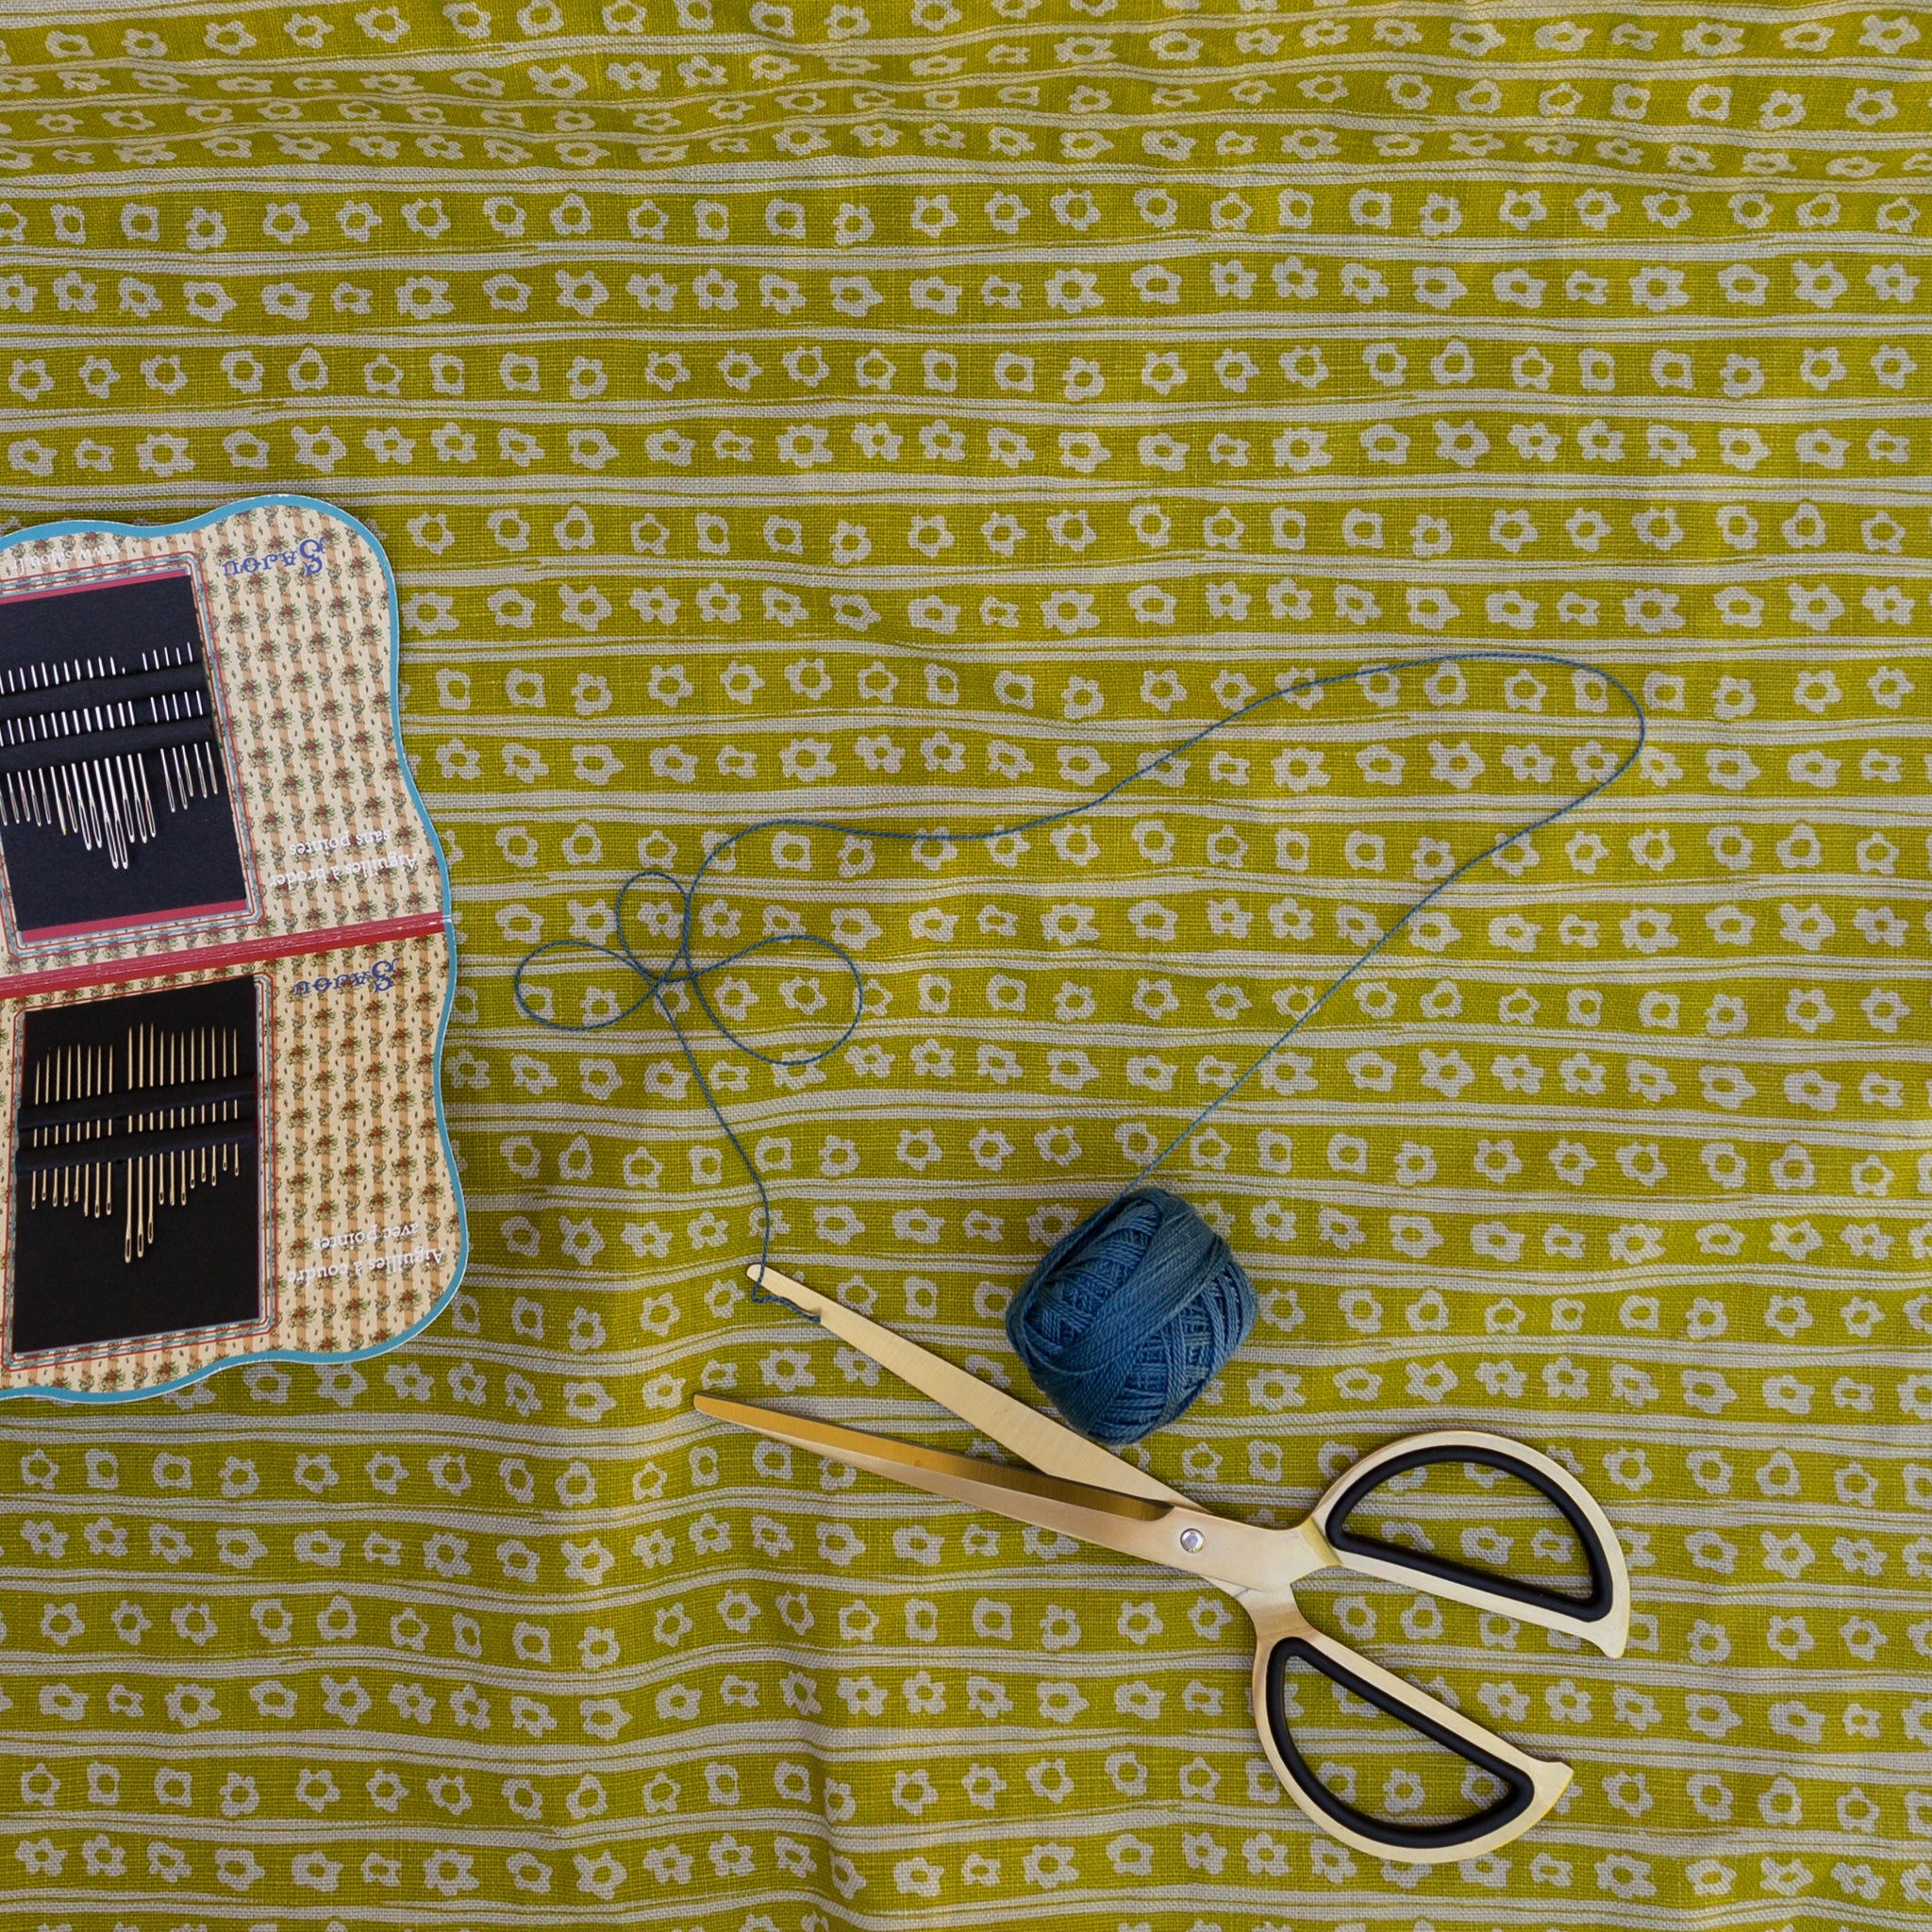 Screen printed fabric with daisy stripes shown with sewing tools